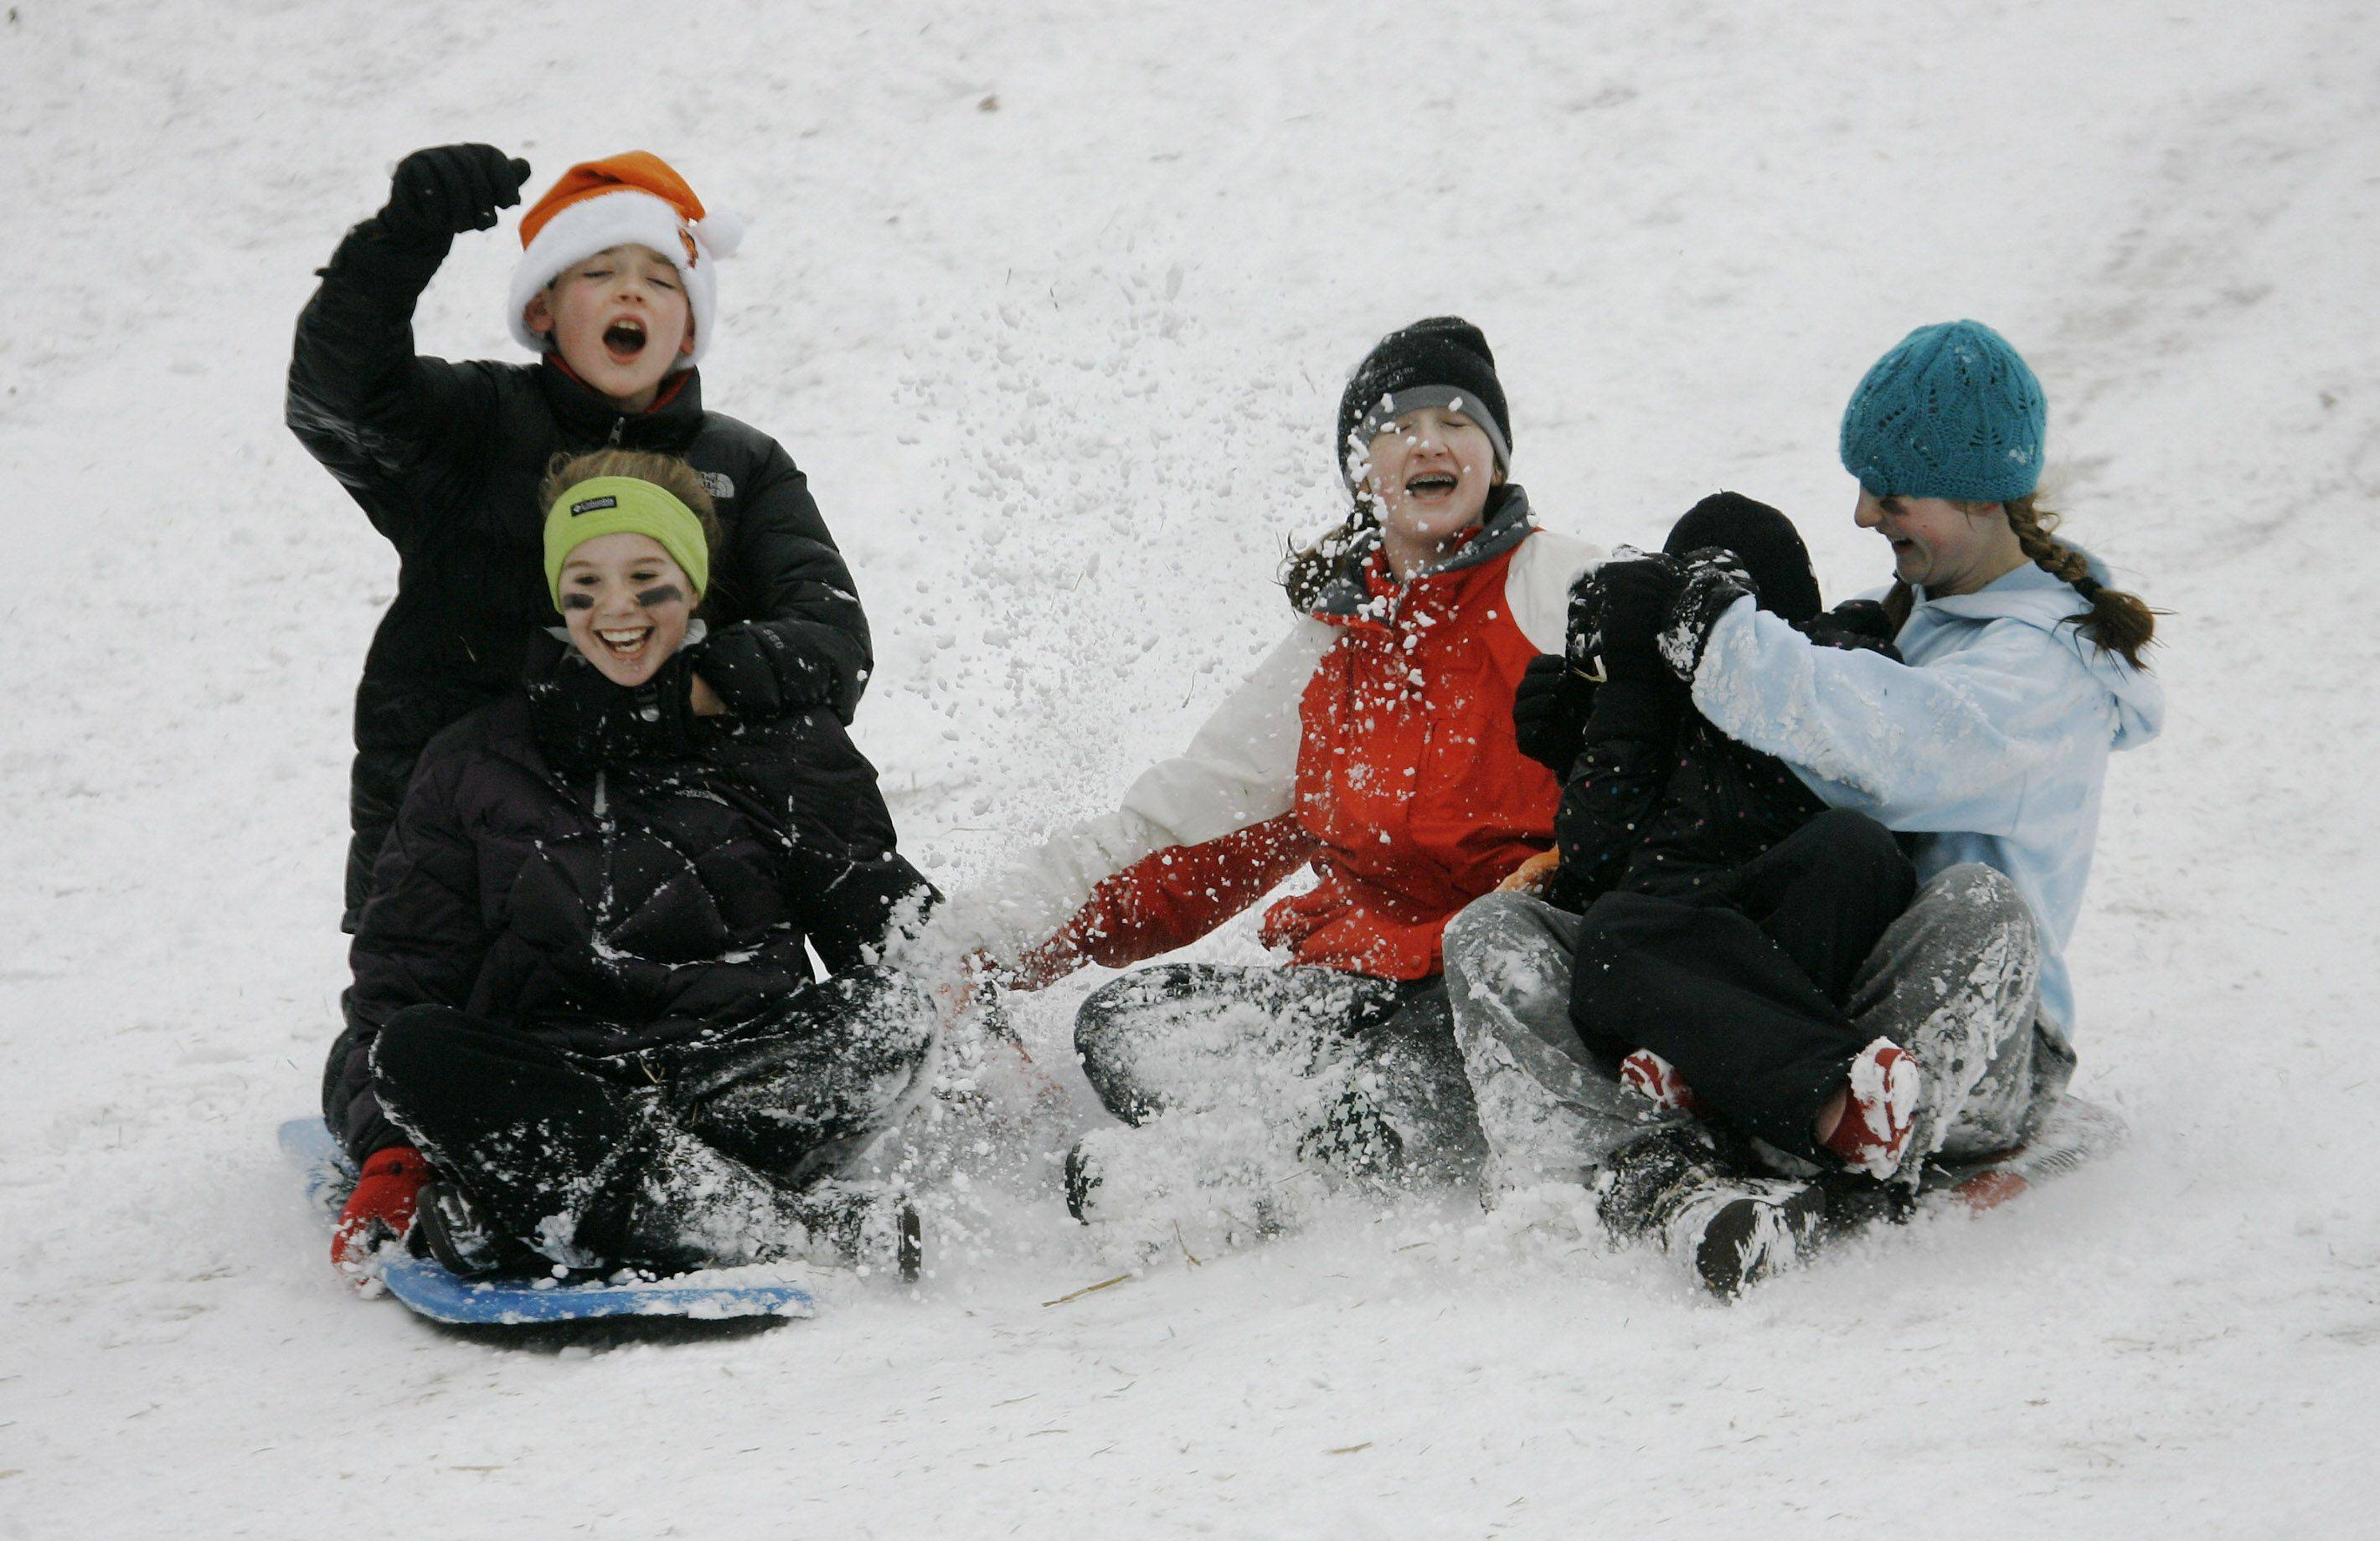 Michael Graham, 11, left, Morgan Burns, 13, Kelly Griffin, 12, Bridget Graham, 5, and Mary Graham, 12, hold onto each other as they go down the sled hill at Adler Park in Libertyville Tuesday.